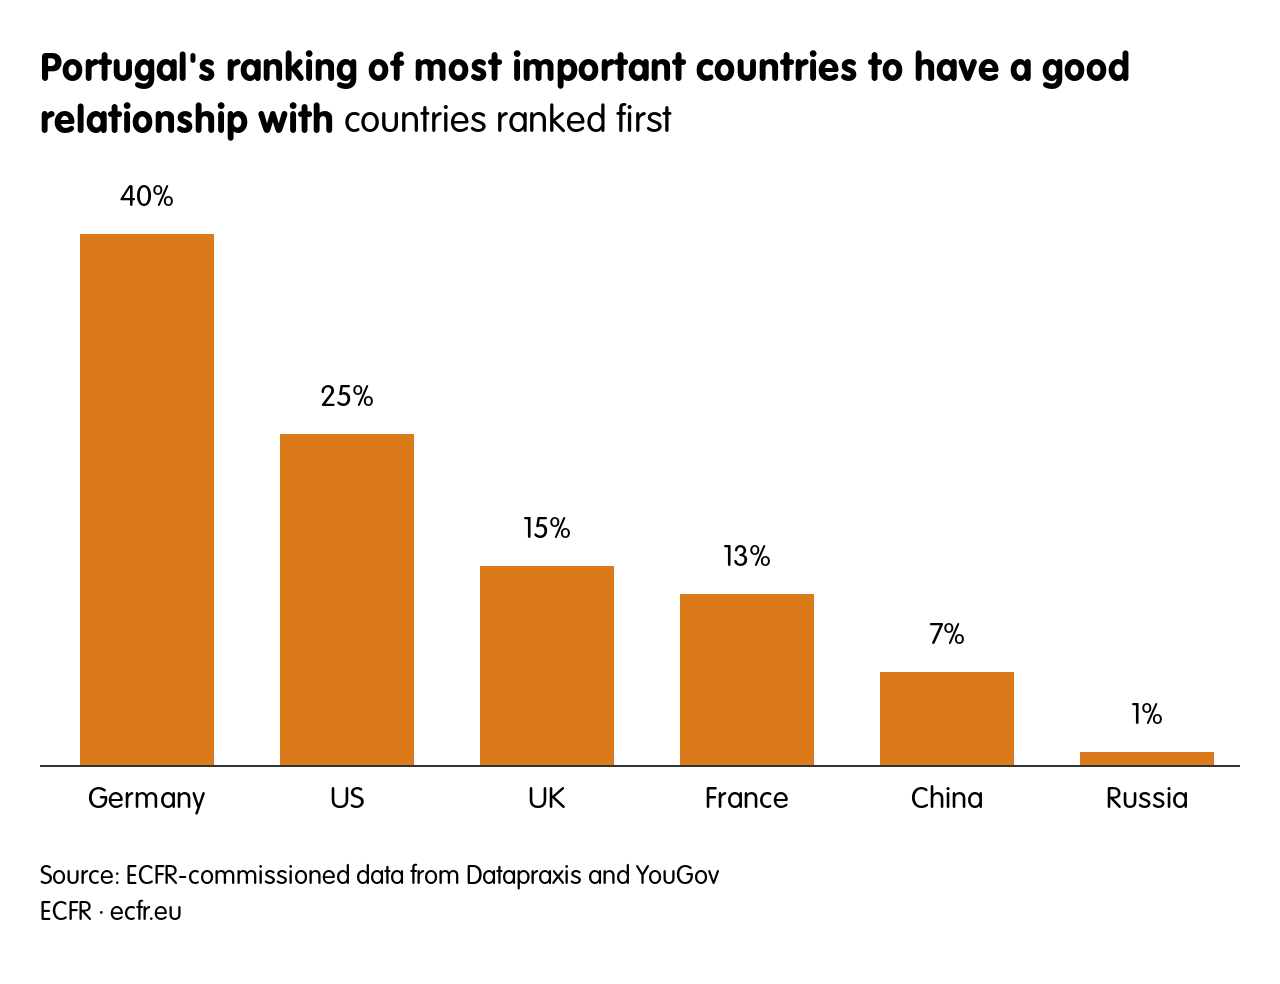 Portugal's ranking of most important countries to have a good relationship with